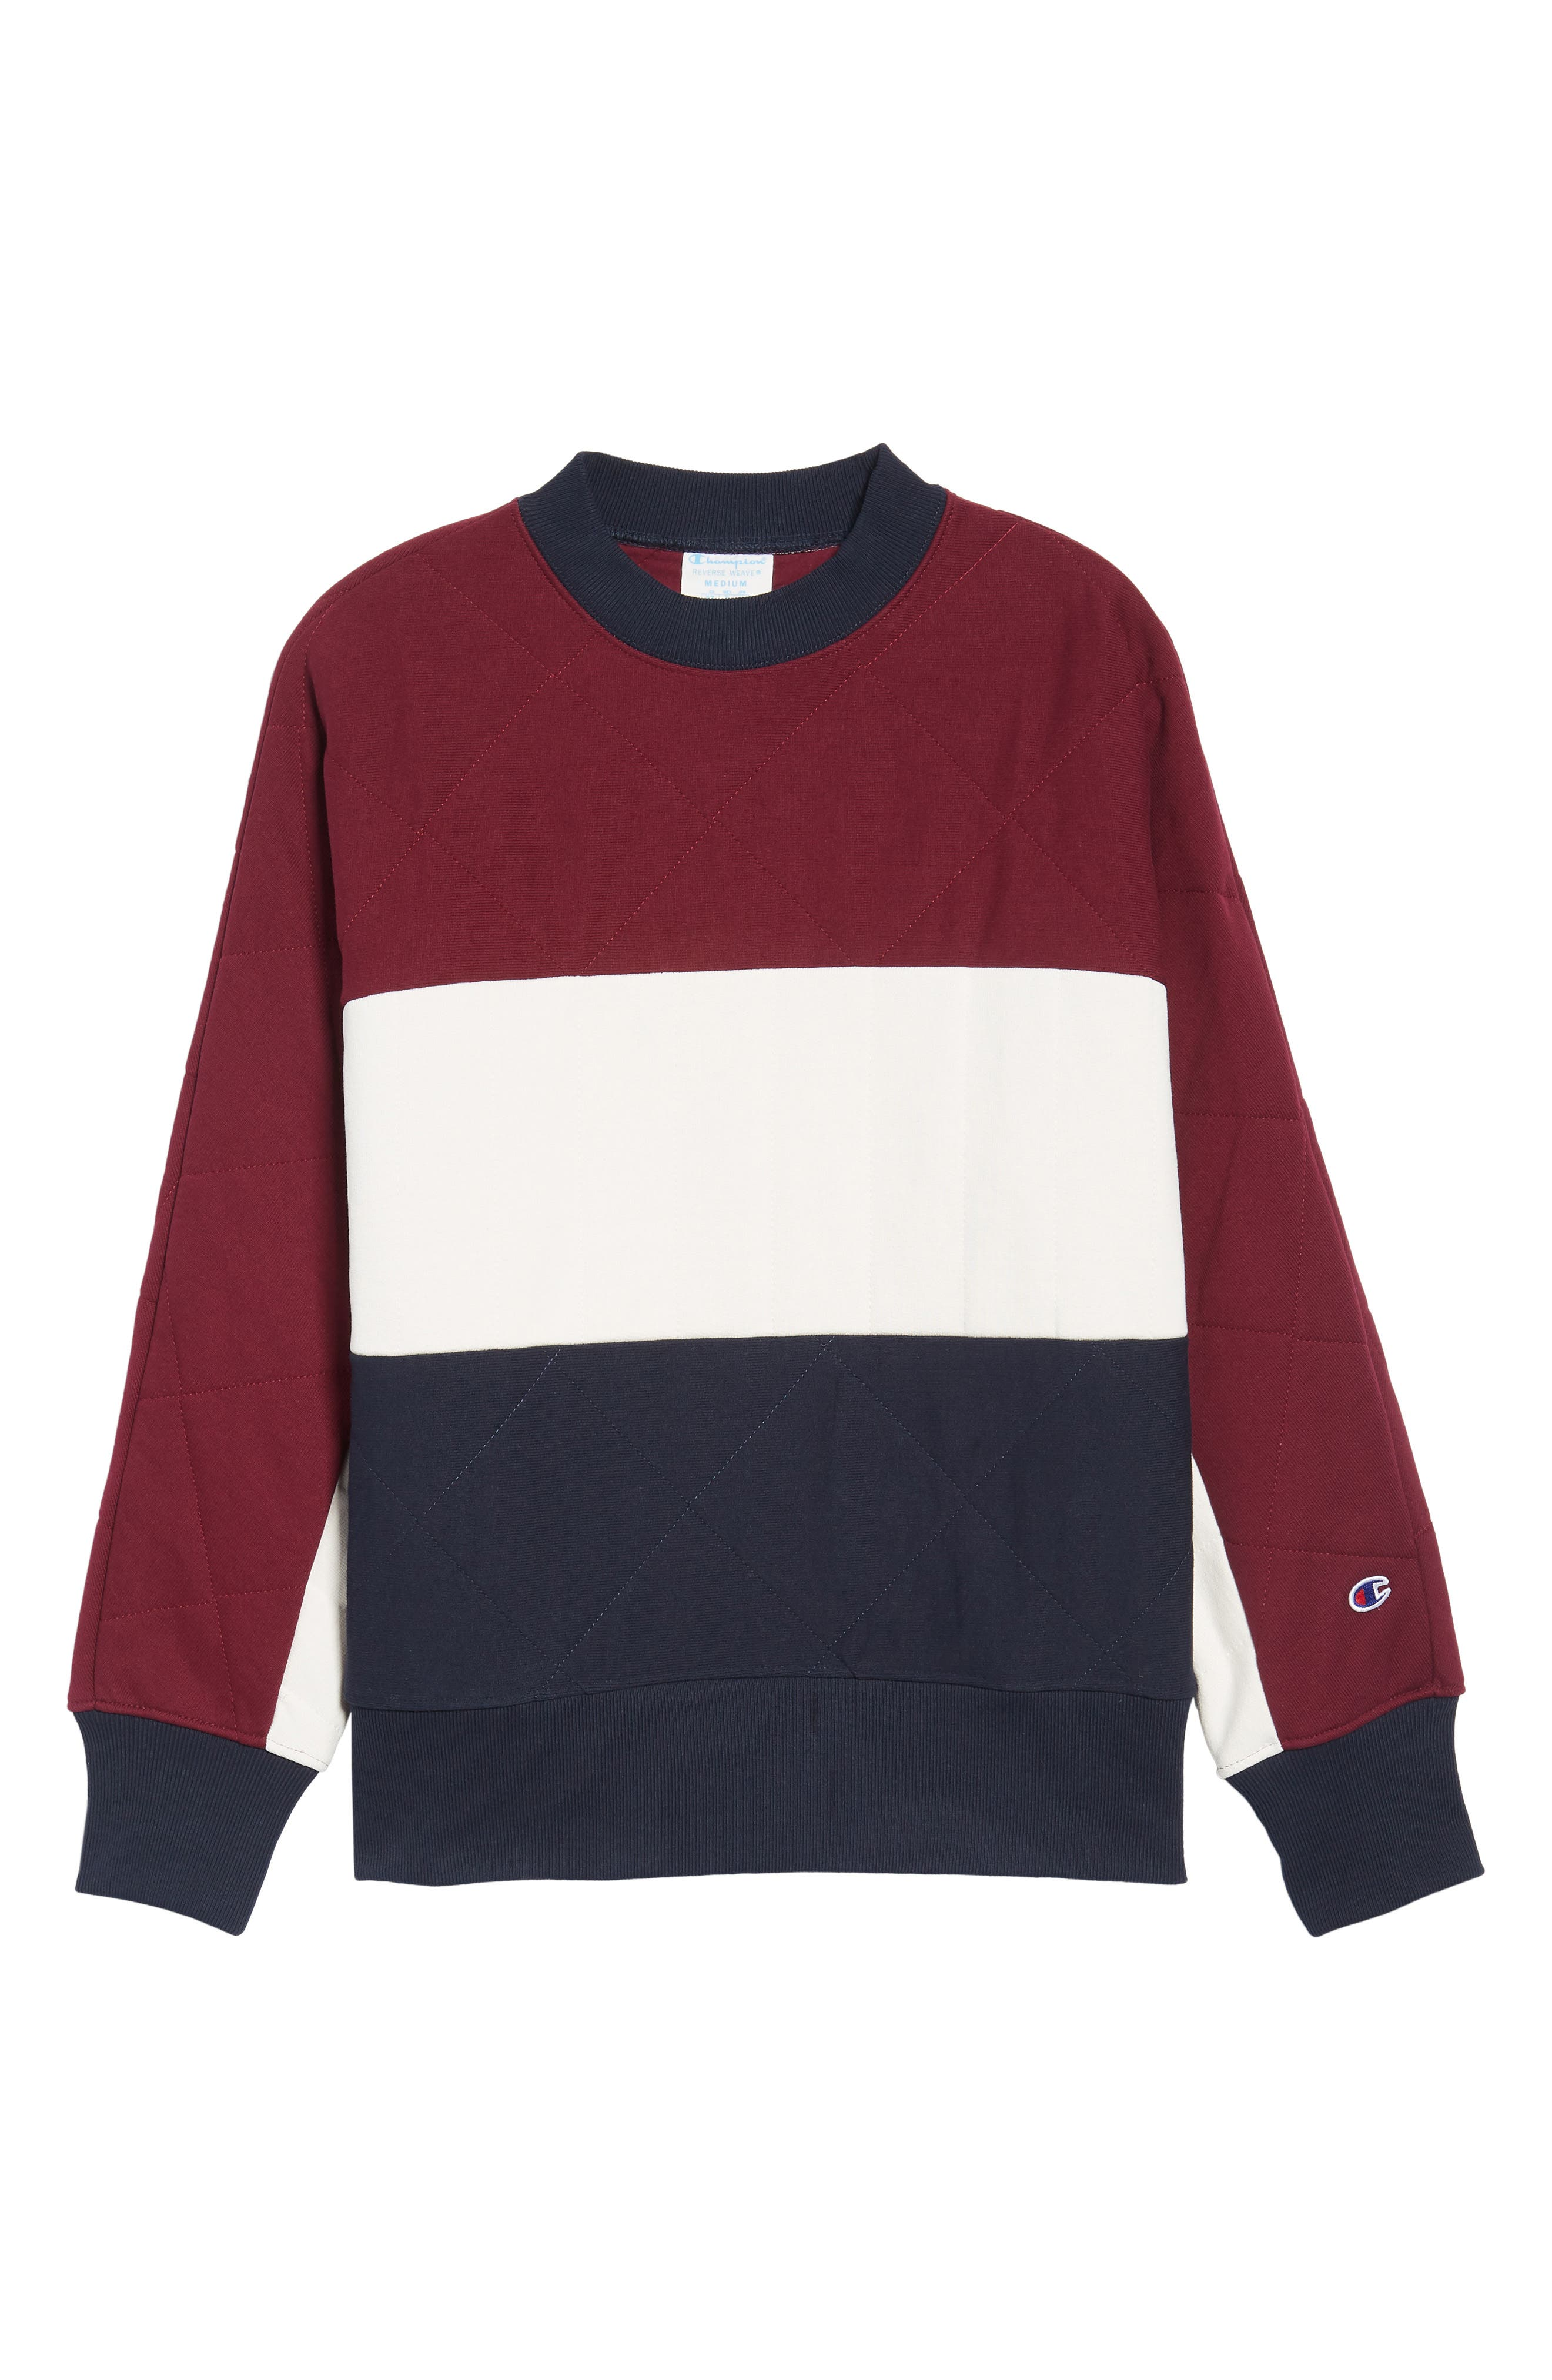 Quilted Colorblock Sweatshirt,                             Alternate thumbnail 5, color,                             930